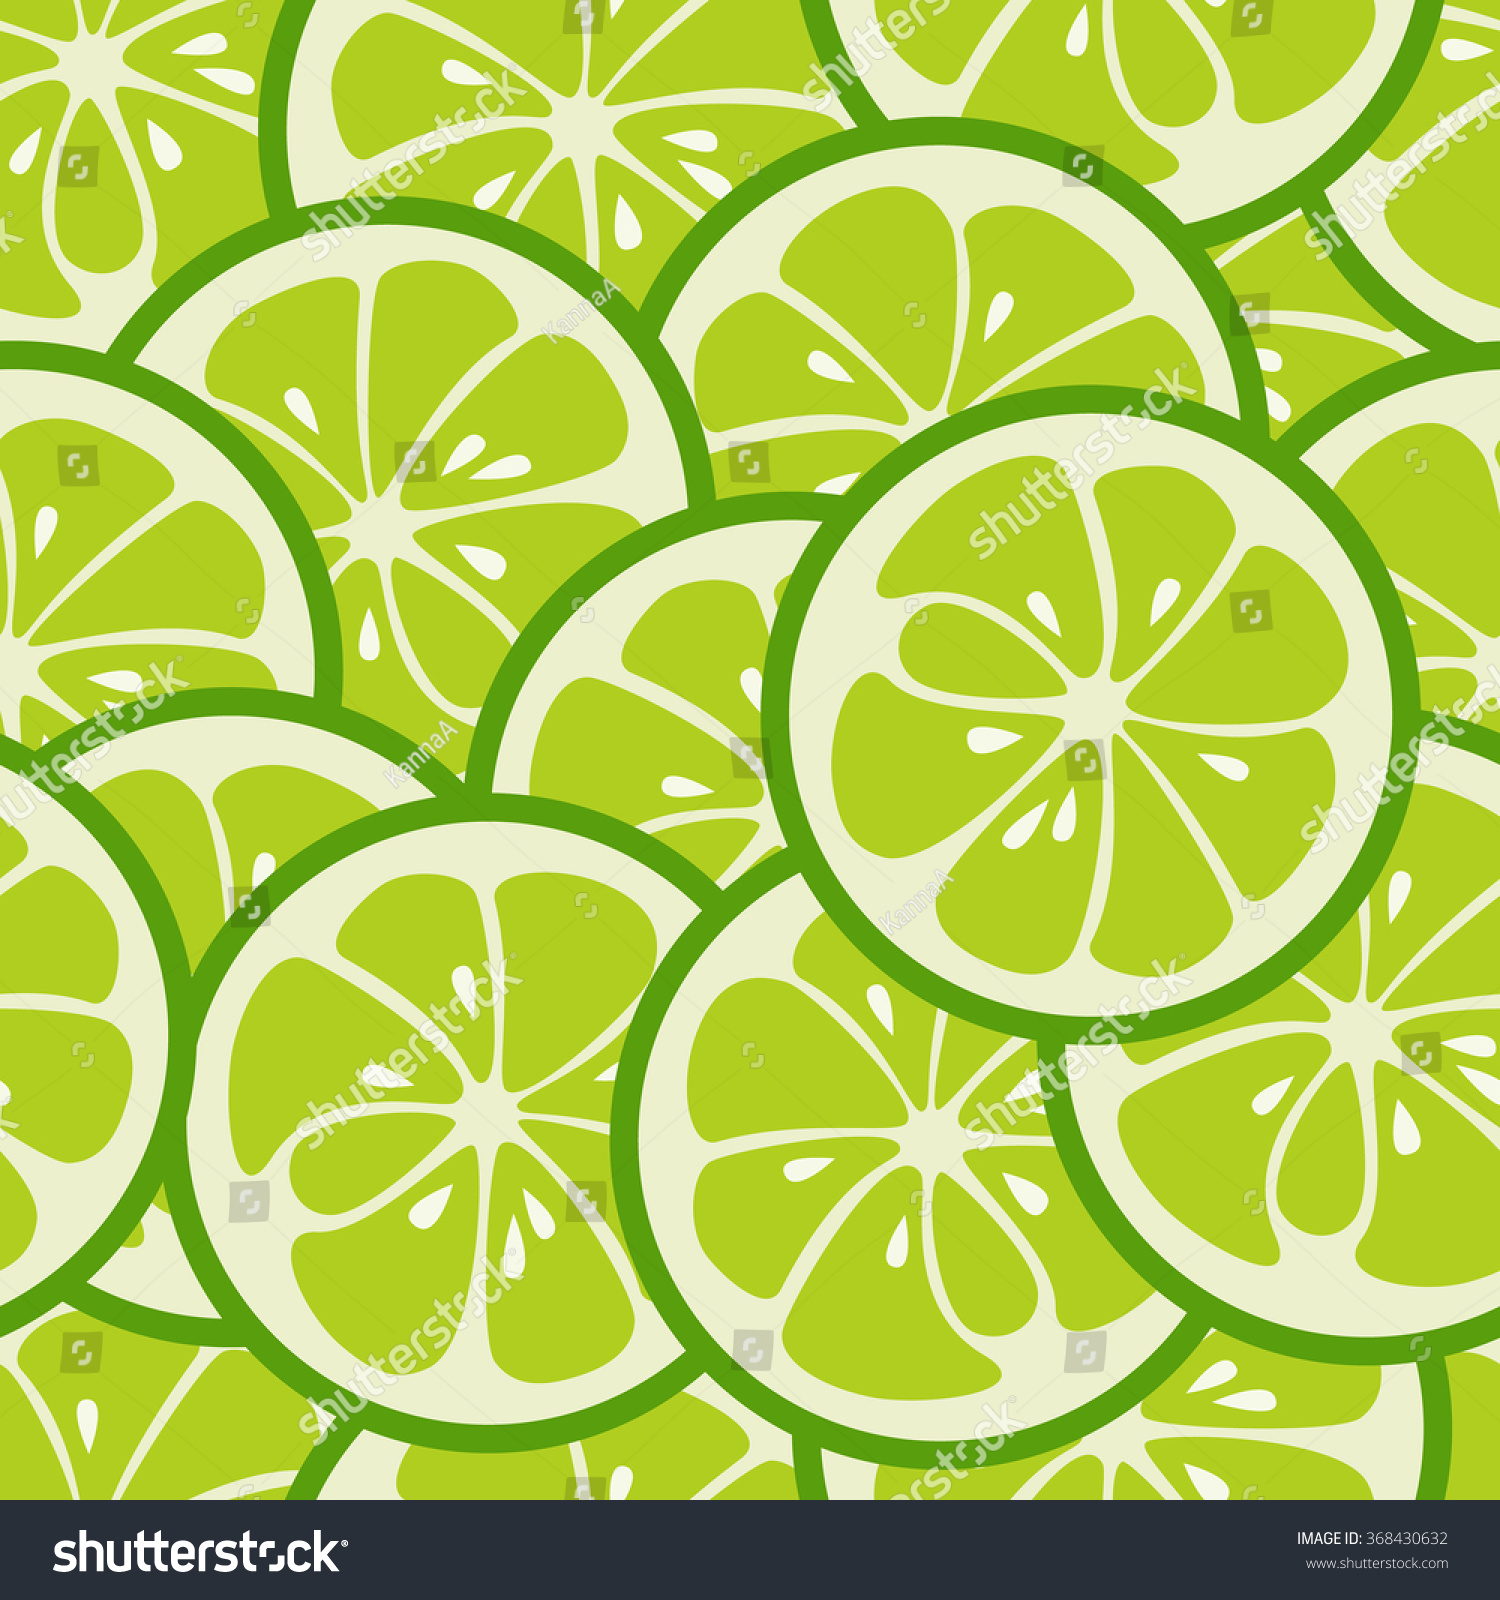 Cute Seamless Pattern With Green Lime Slices. Tasty Summer Background. Yummy Tropical ...